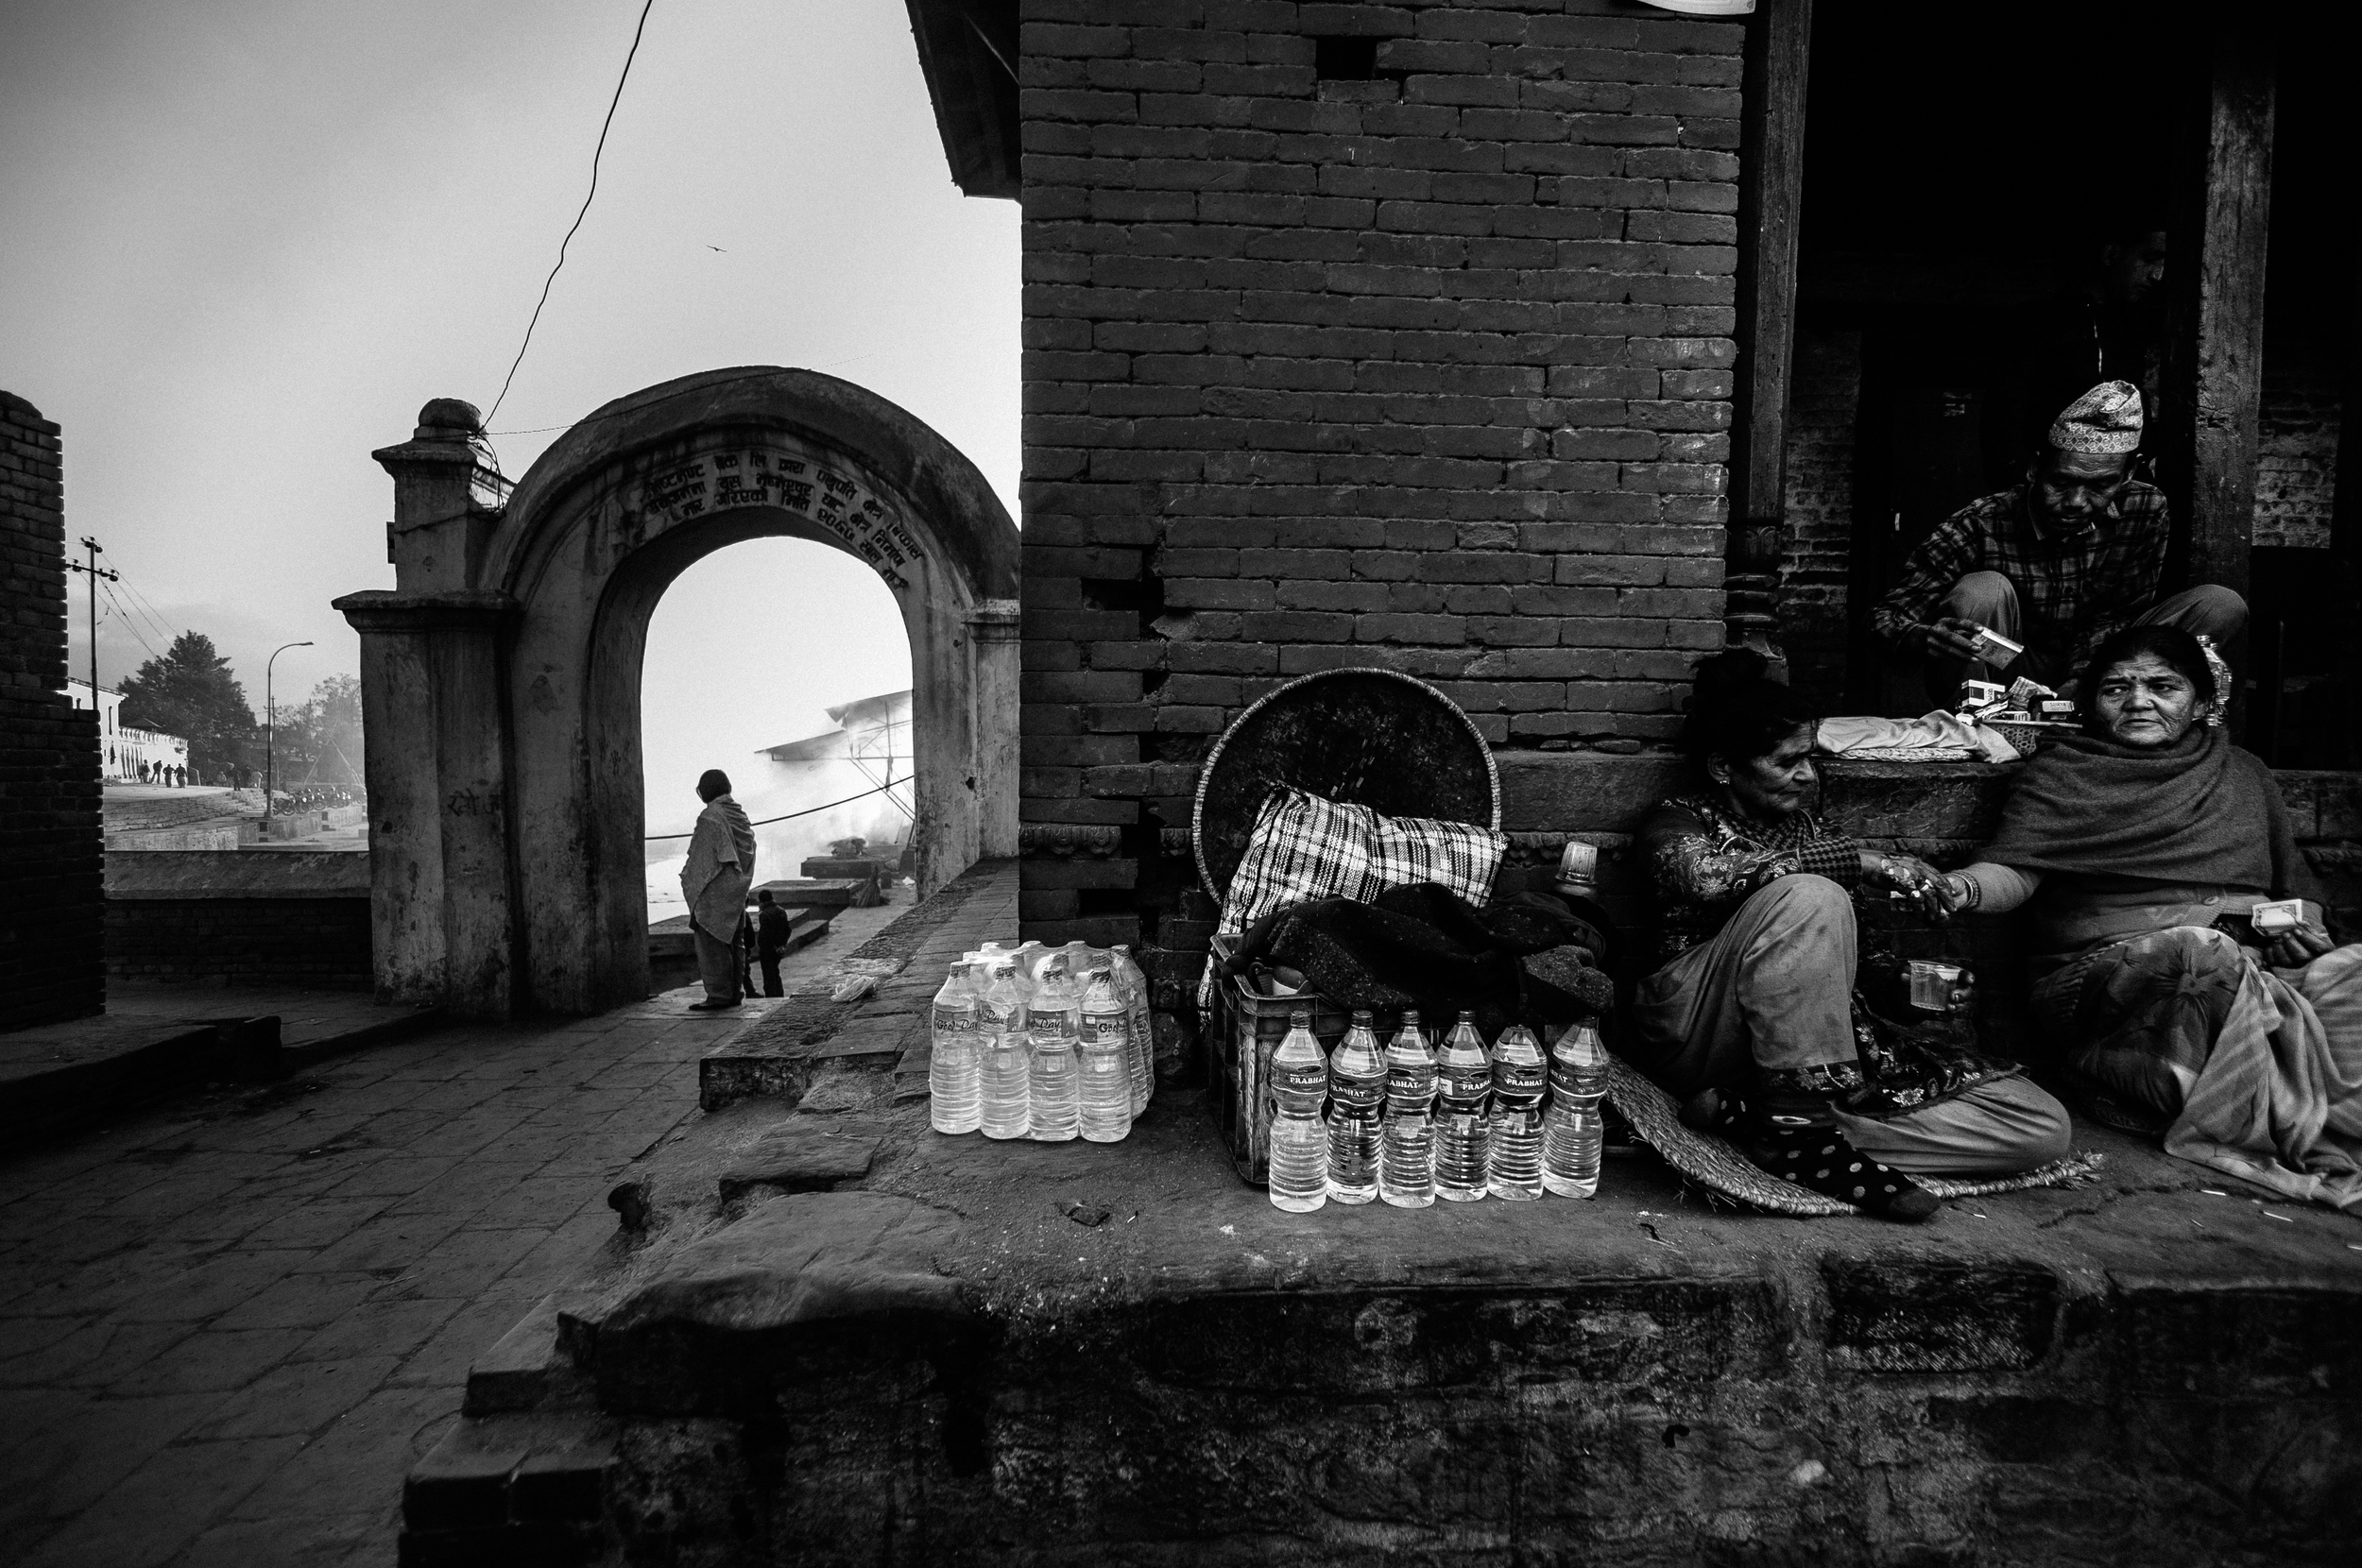 Temple vendors sell cigarettes, refreshments and items used in the burial ceremonies.